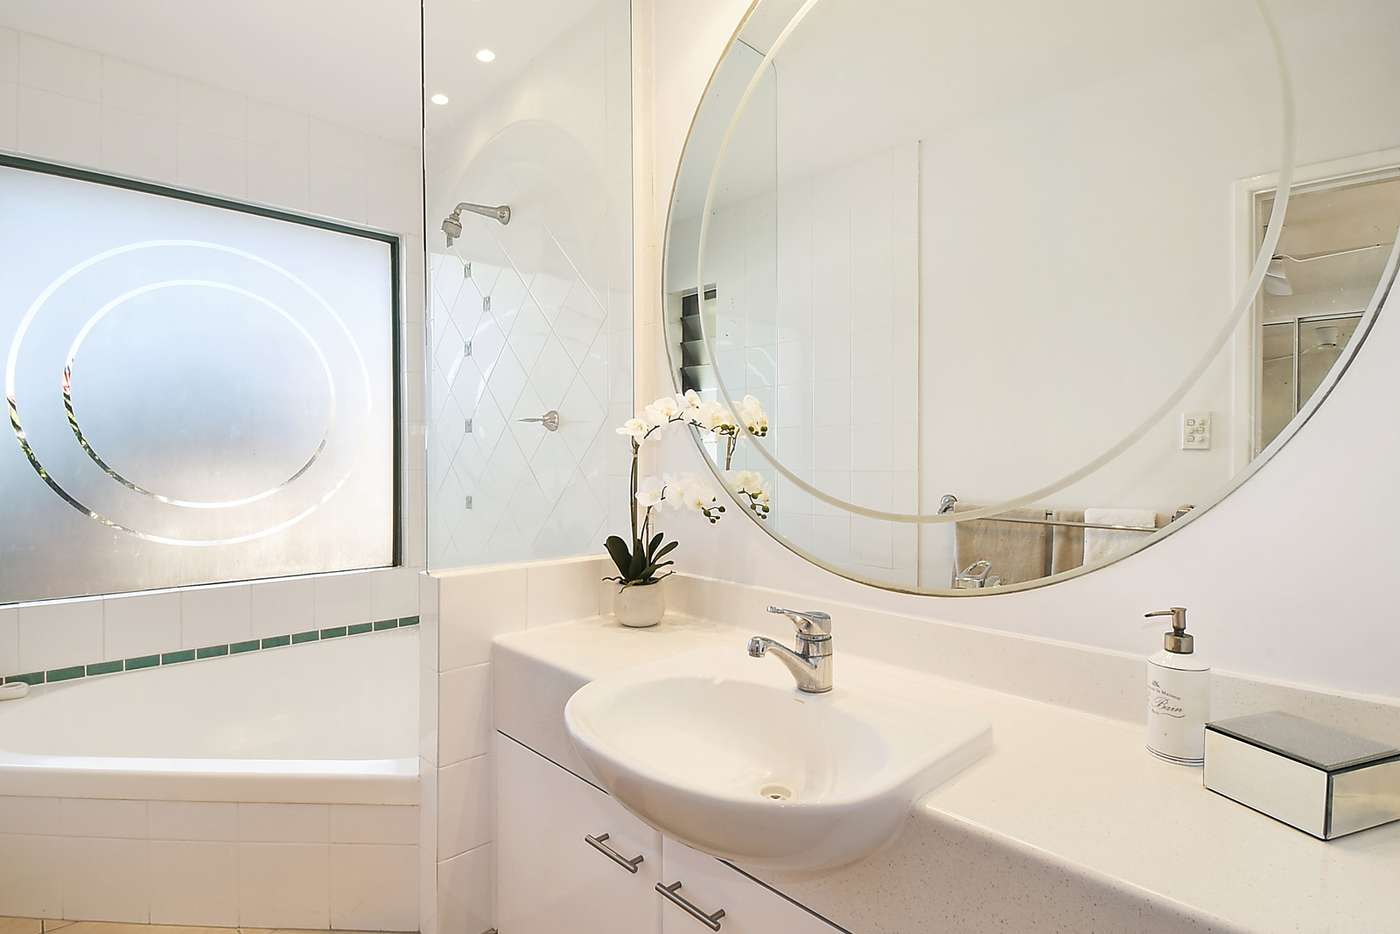 Sixth view of Homely apartment listing, 5/97 The Strand, North Ward QLD 4810